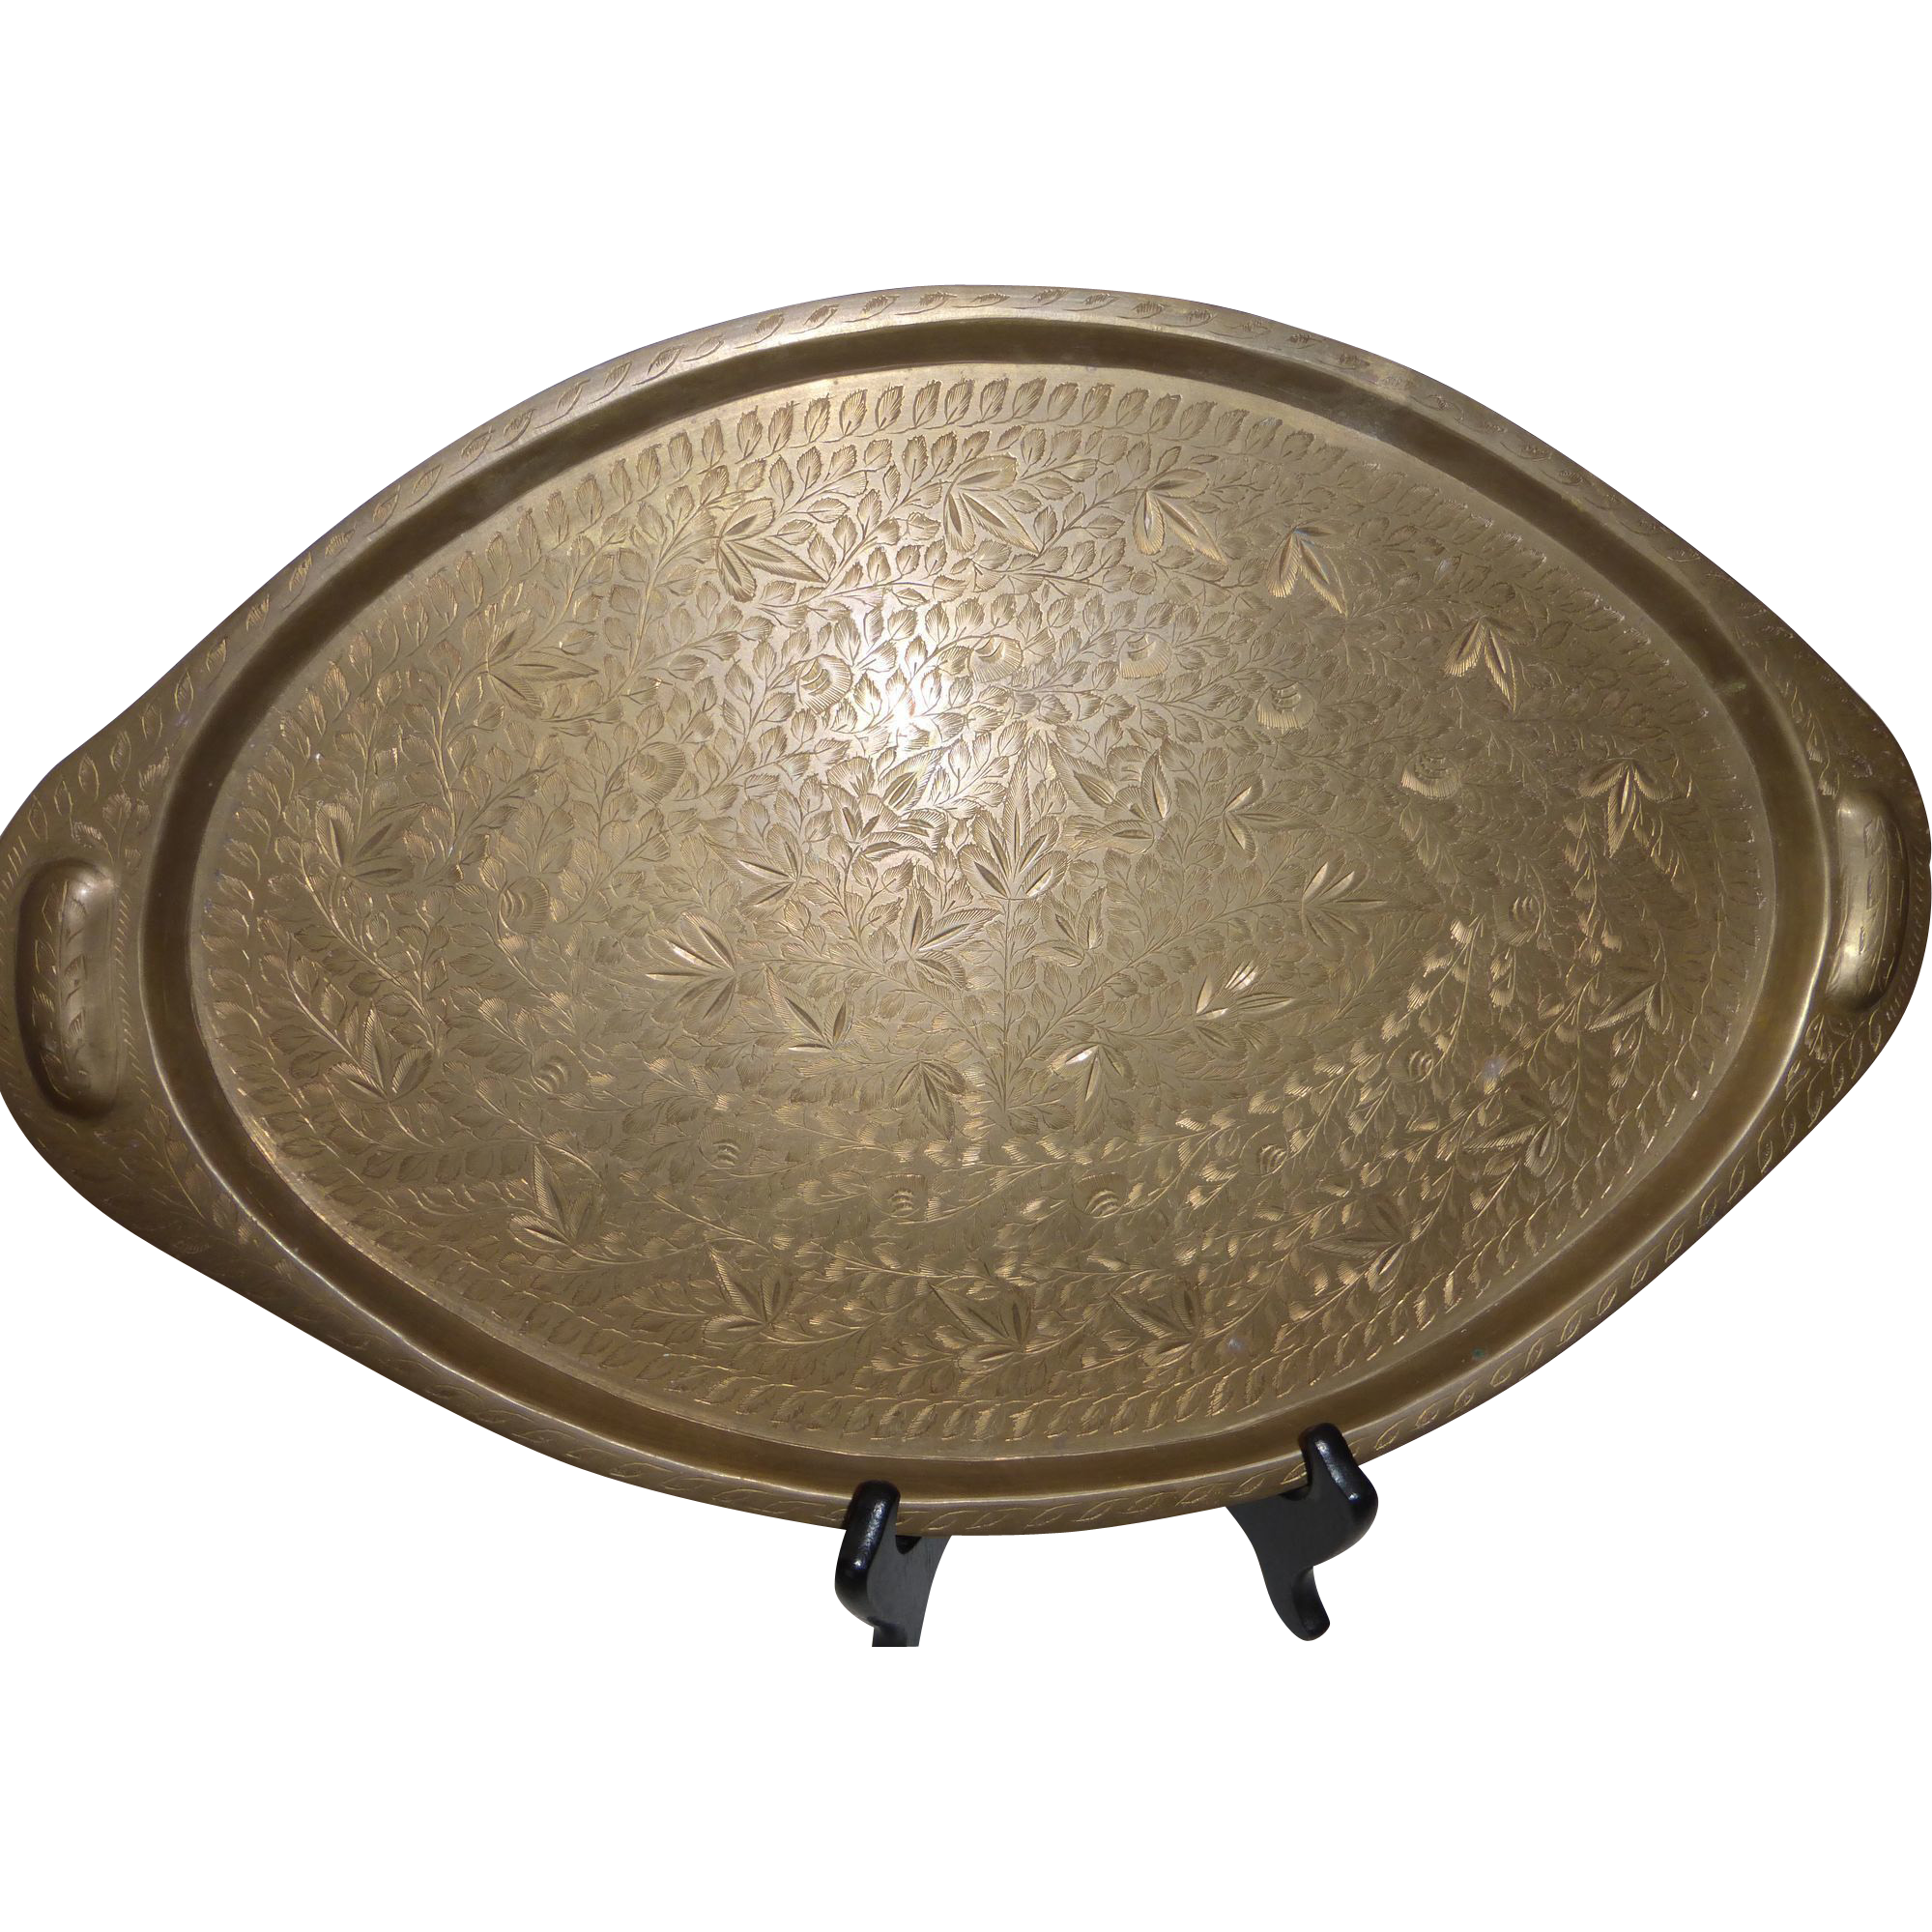 Vintage India Engraved Brass Serving Tray Platter From